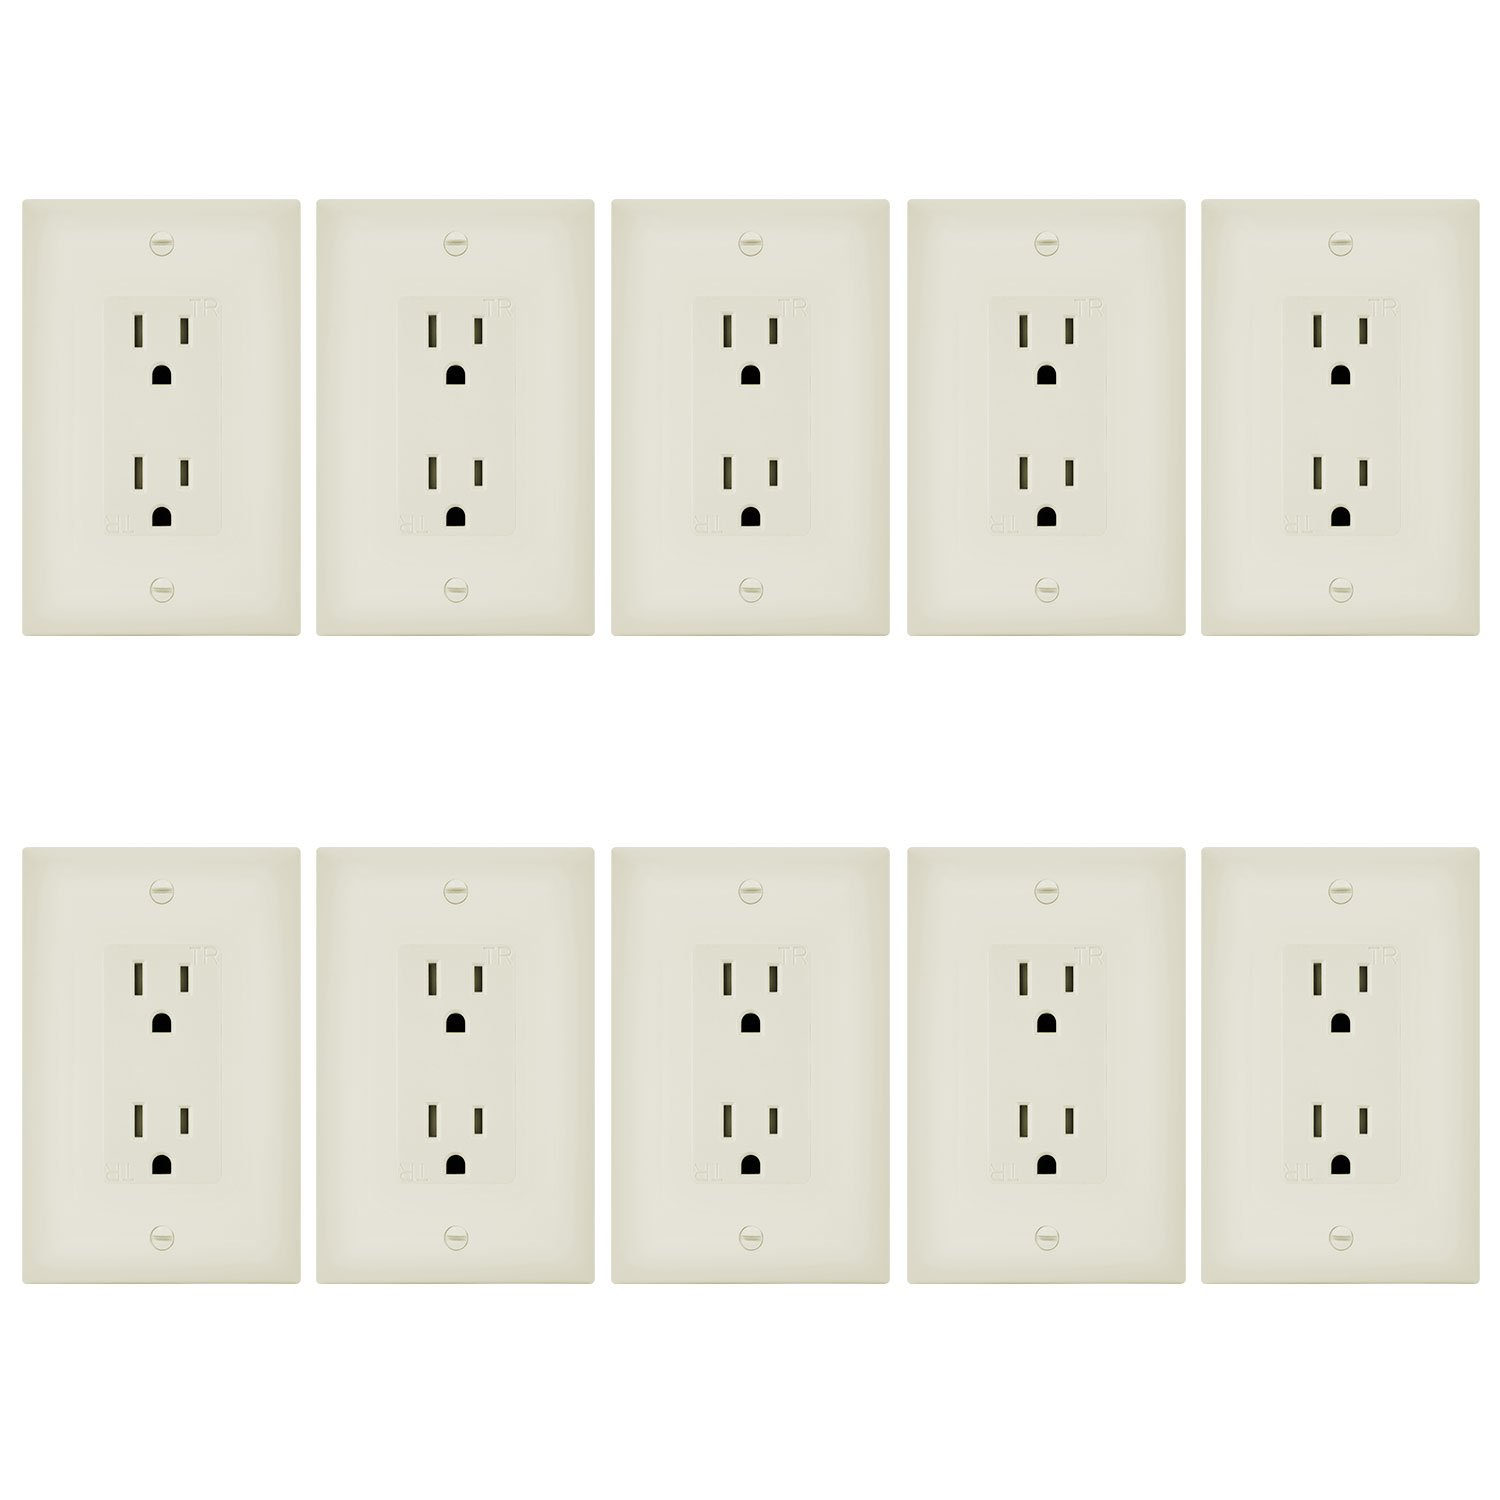 Enerlites 61501-TR-LAWP-10PCS Decorator Receptacle and Wall Plate Cover, Tamper Resistant, Self-Grounding, 2-Pole 3-Wire, 15A/125VAC, Light Almond (Pack of 10)